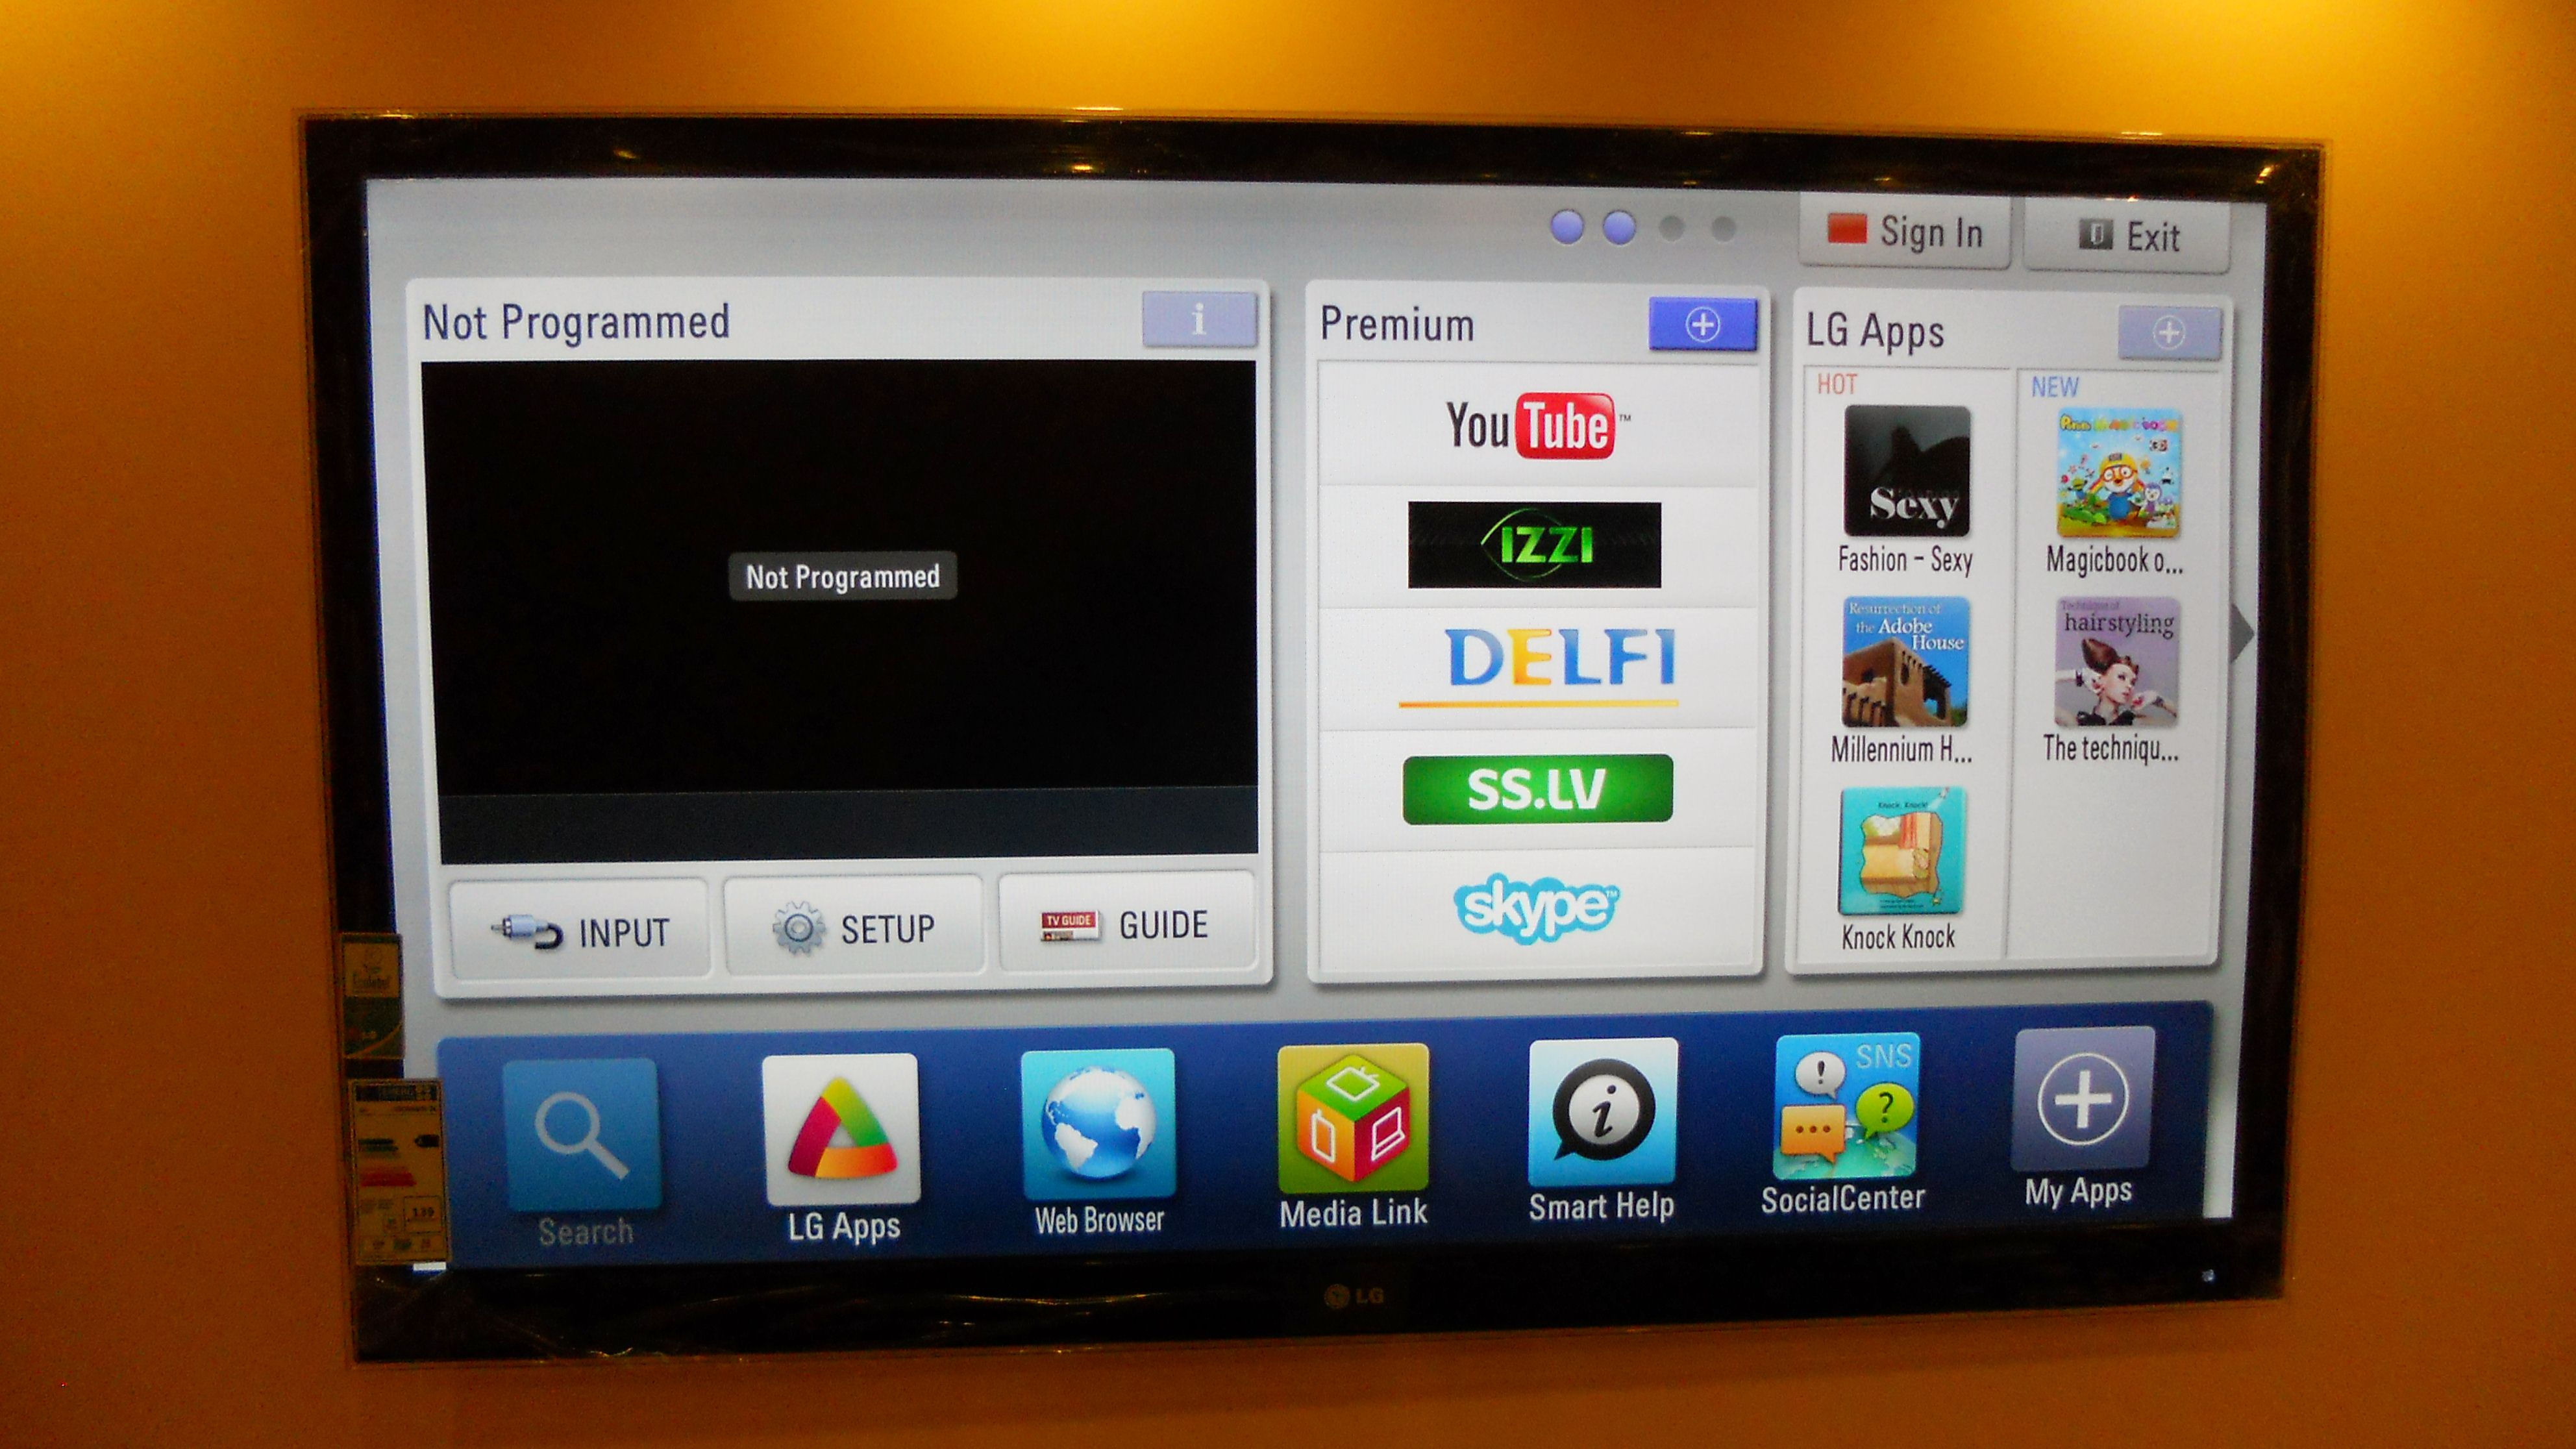 All new smart TV emmits high radiation - wifi blasts all day